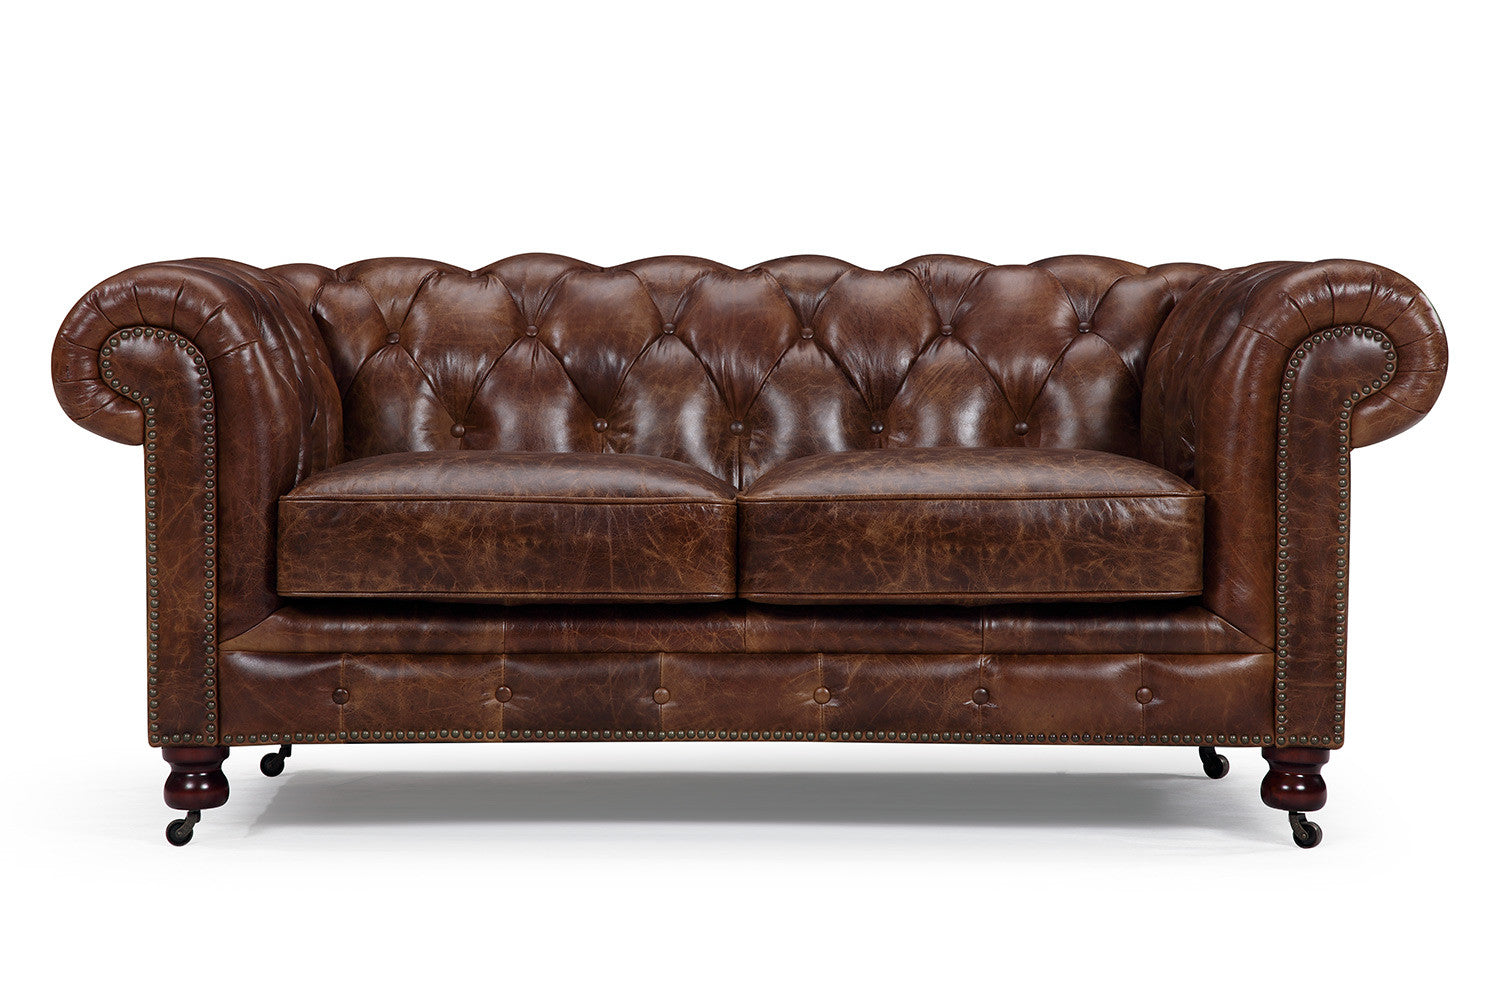 Canap chesterfield en cuir kensington 2 places rose moore - Canape chesterfield cuir ...